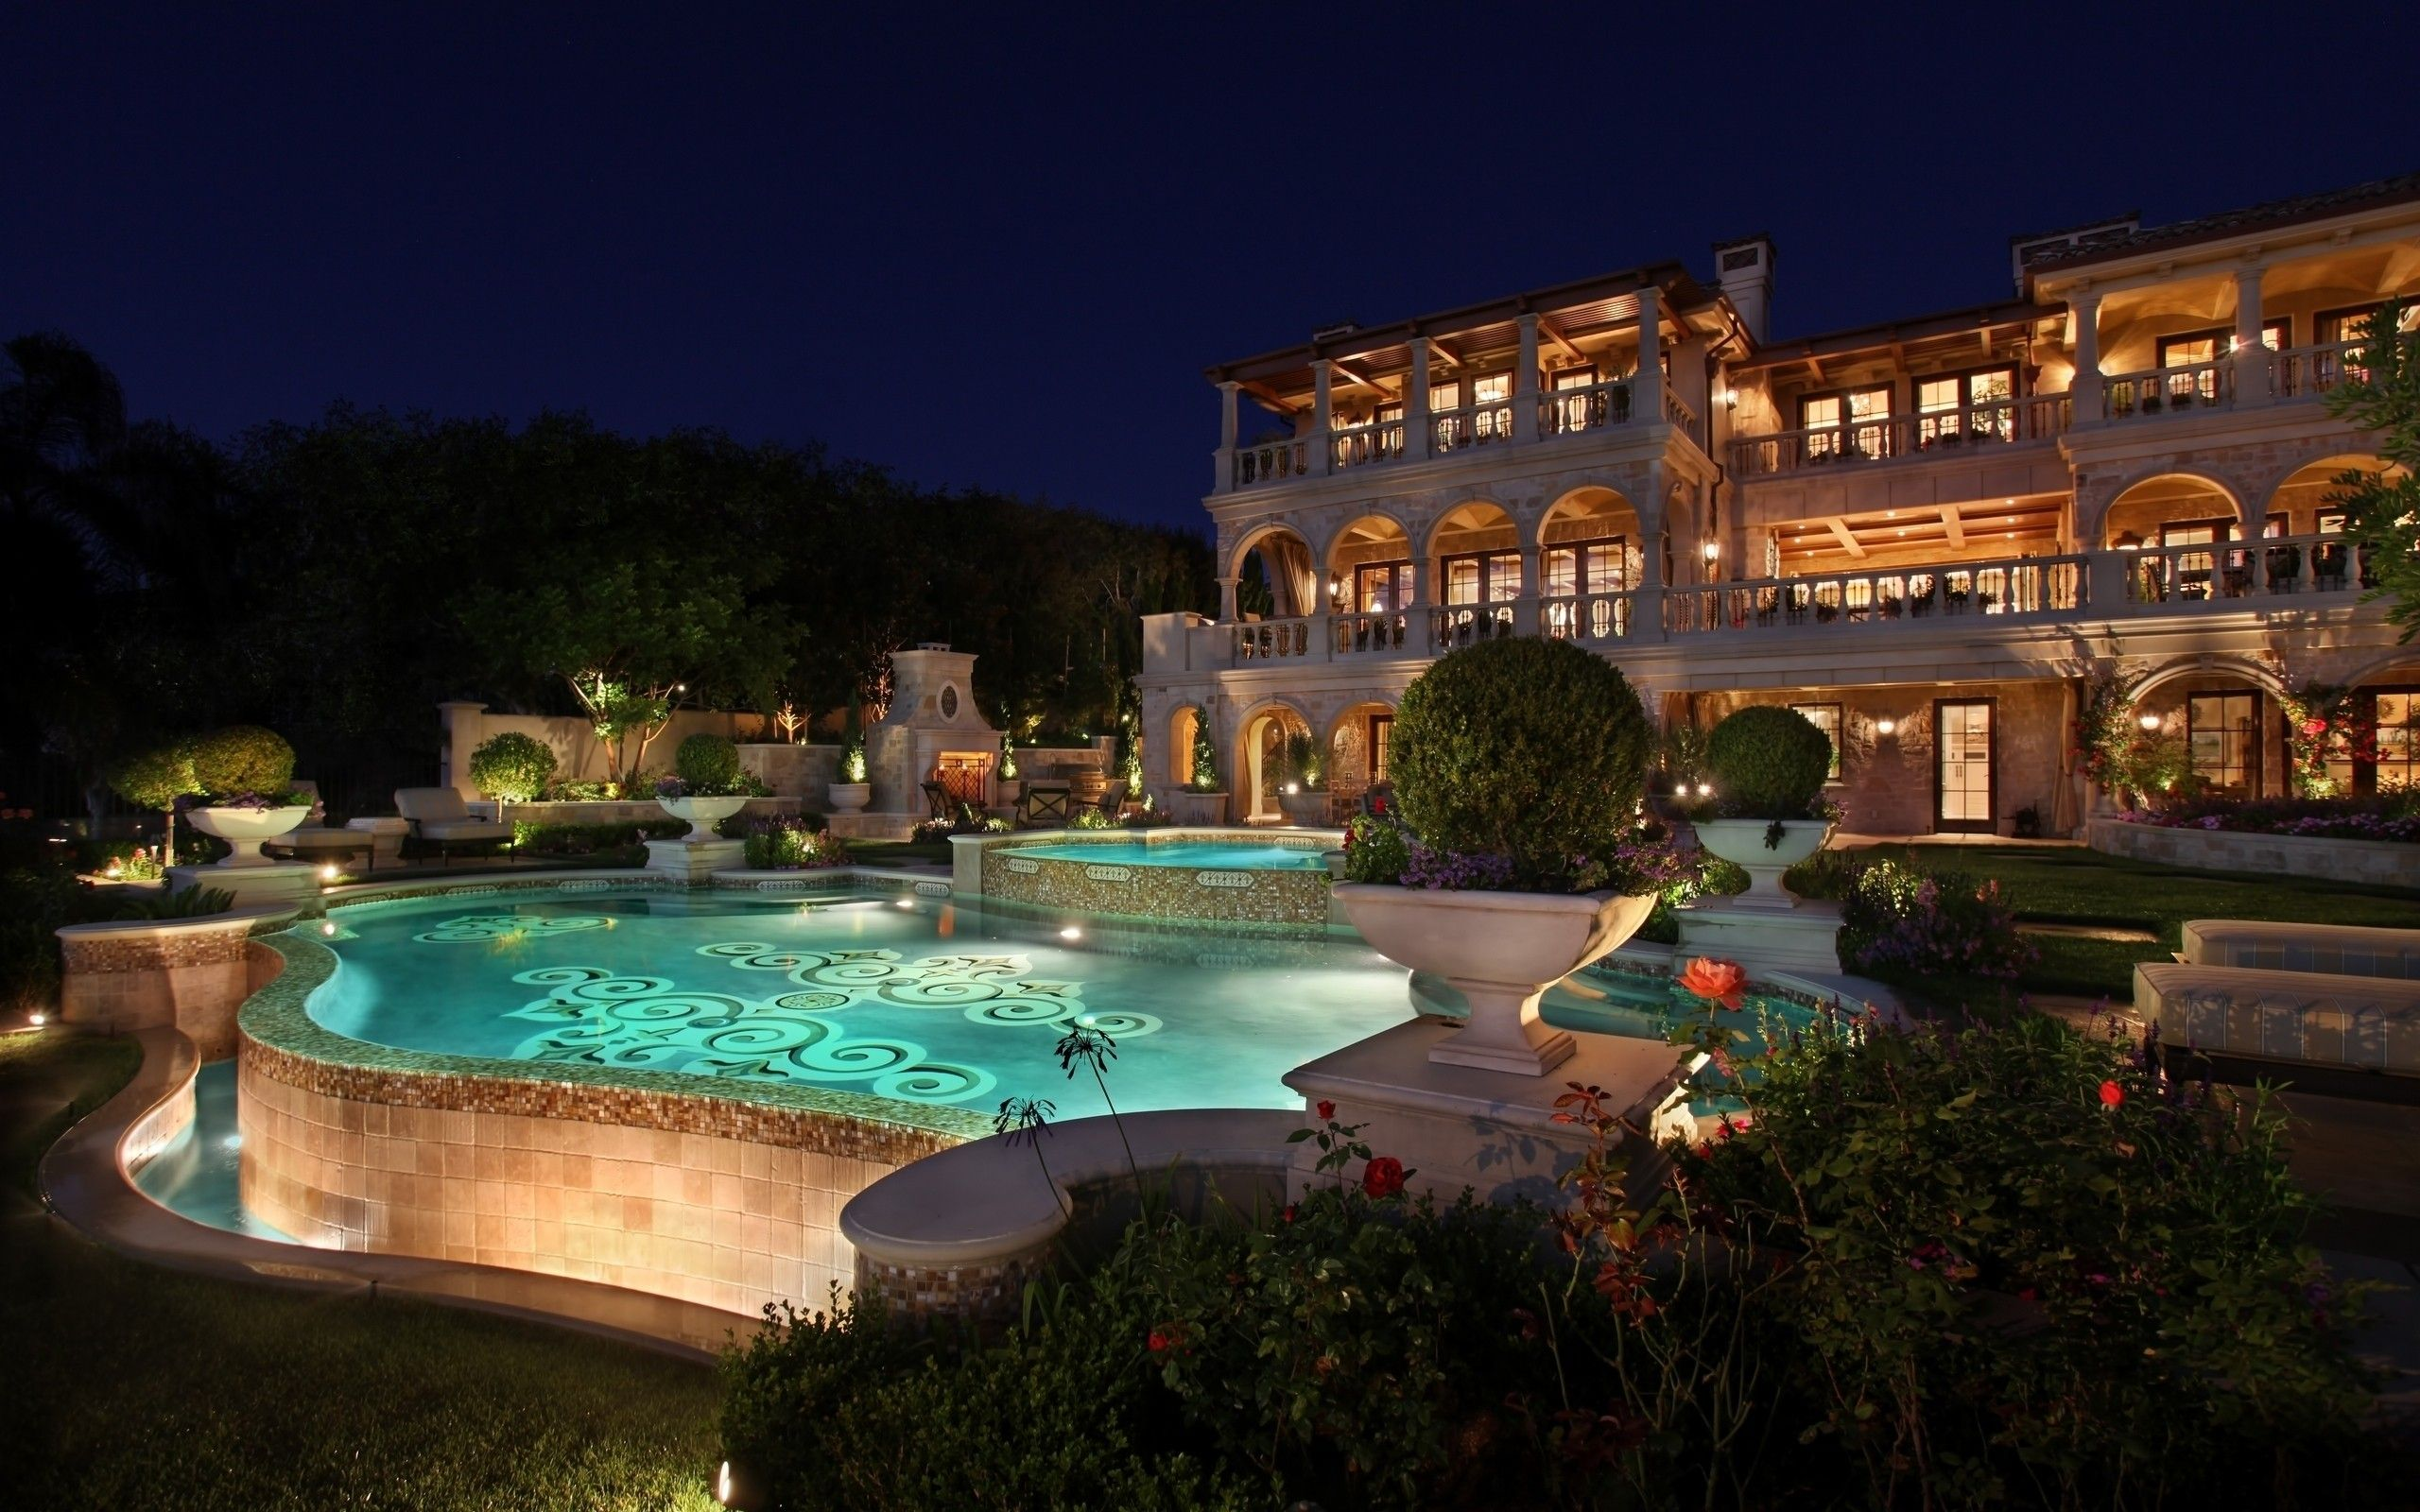 Mansion Houses With Pools dreamhouse <3 | random | pinterest | image resolution, house pools